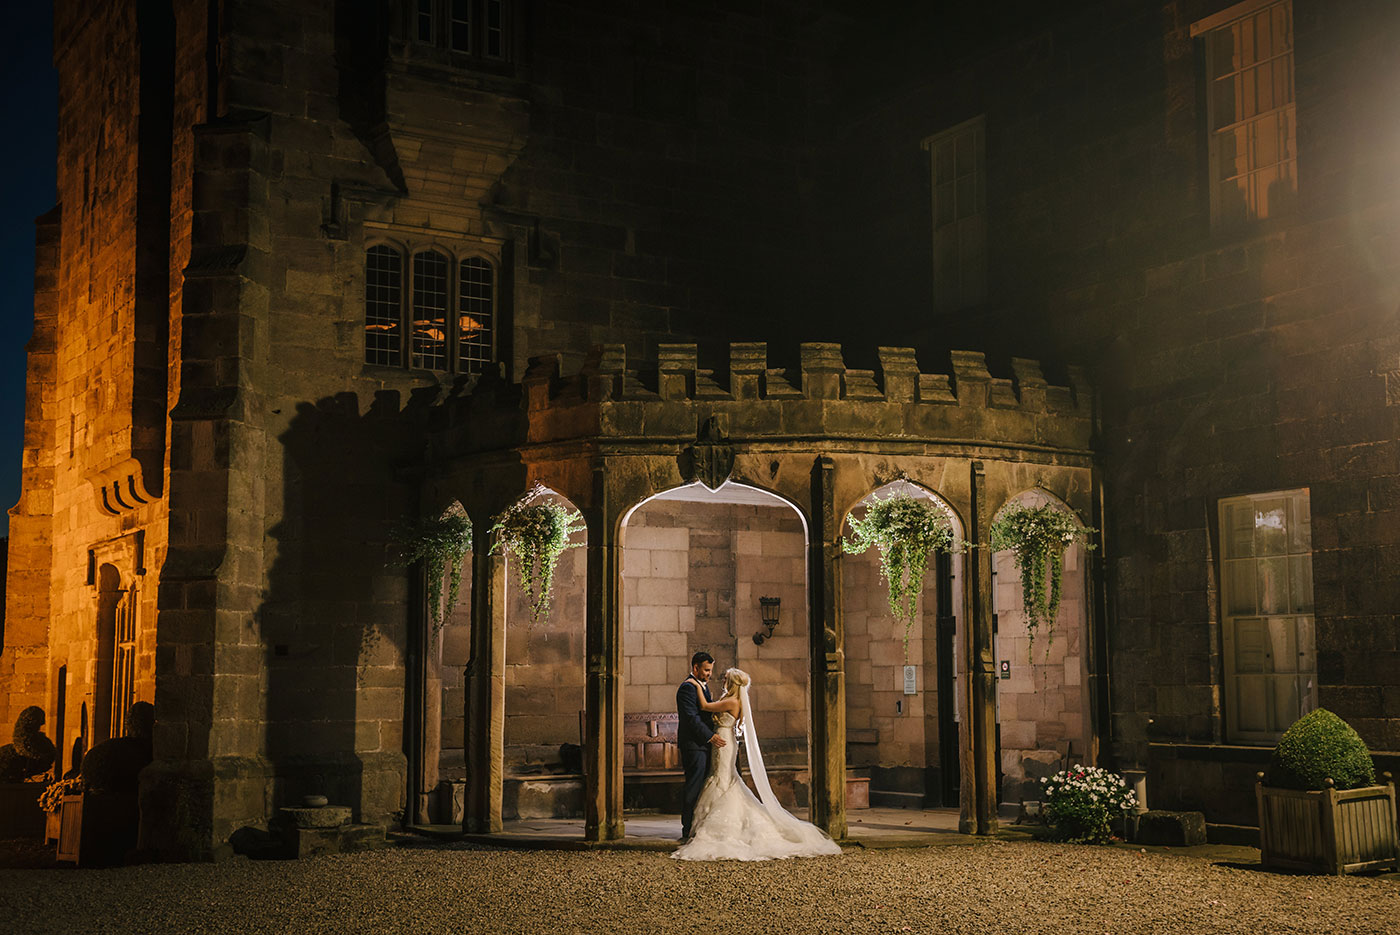 Ripley Castle Wedding Venue